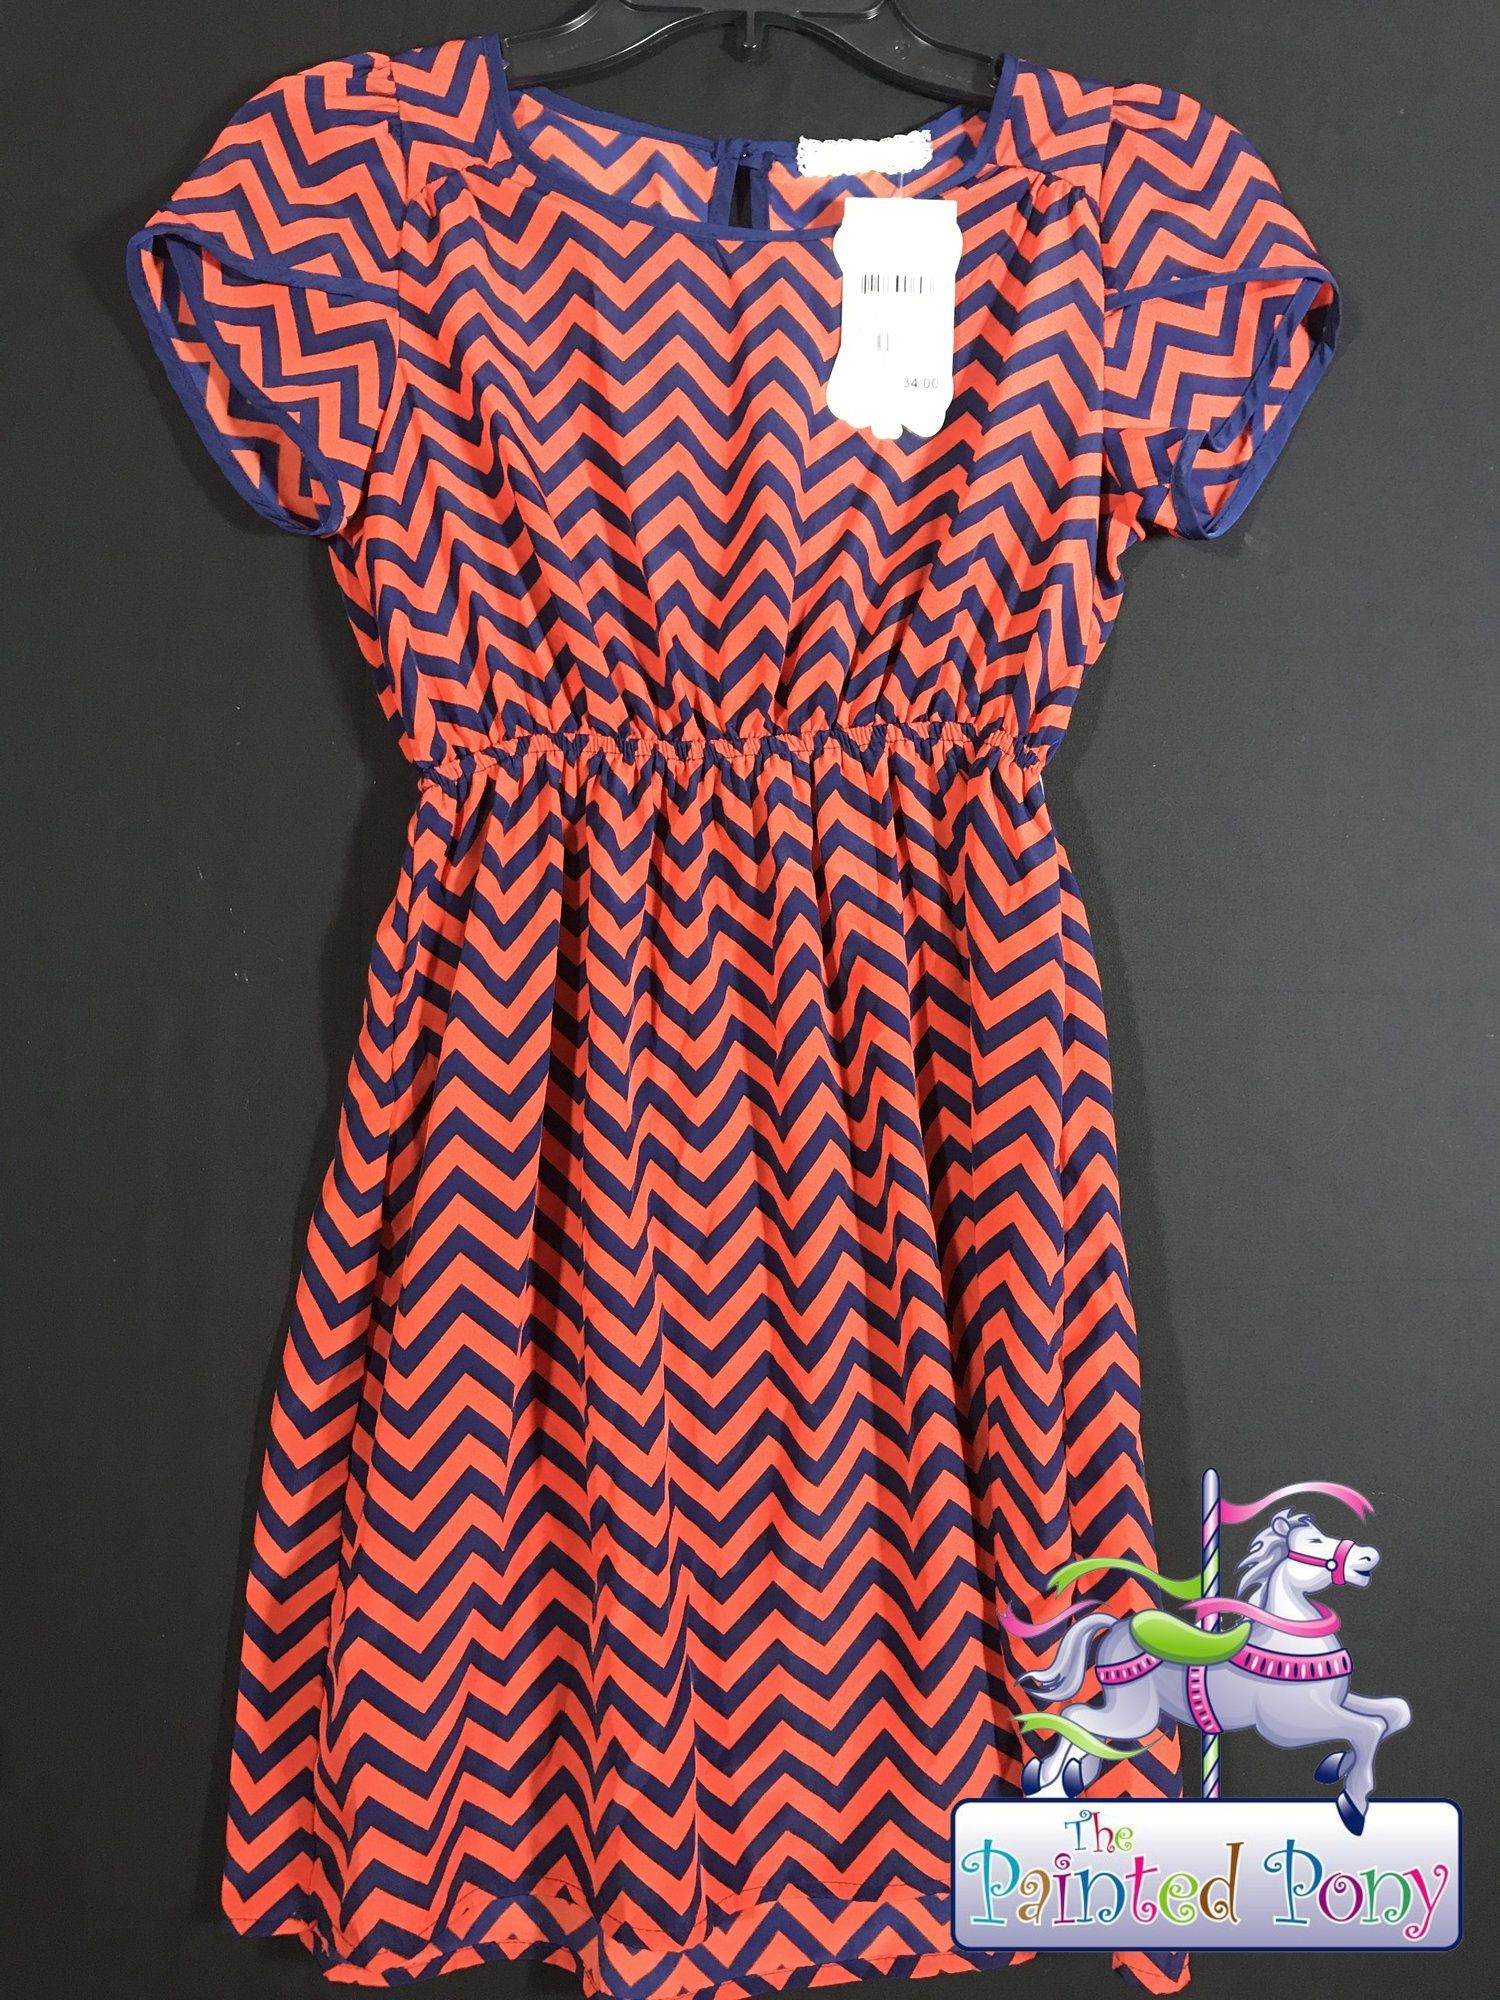 Girls size 10-12 colorful dress by Soprano, N W T, $16.99